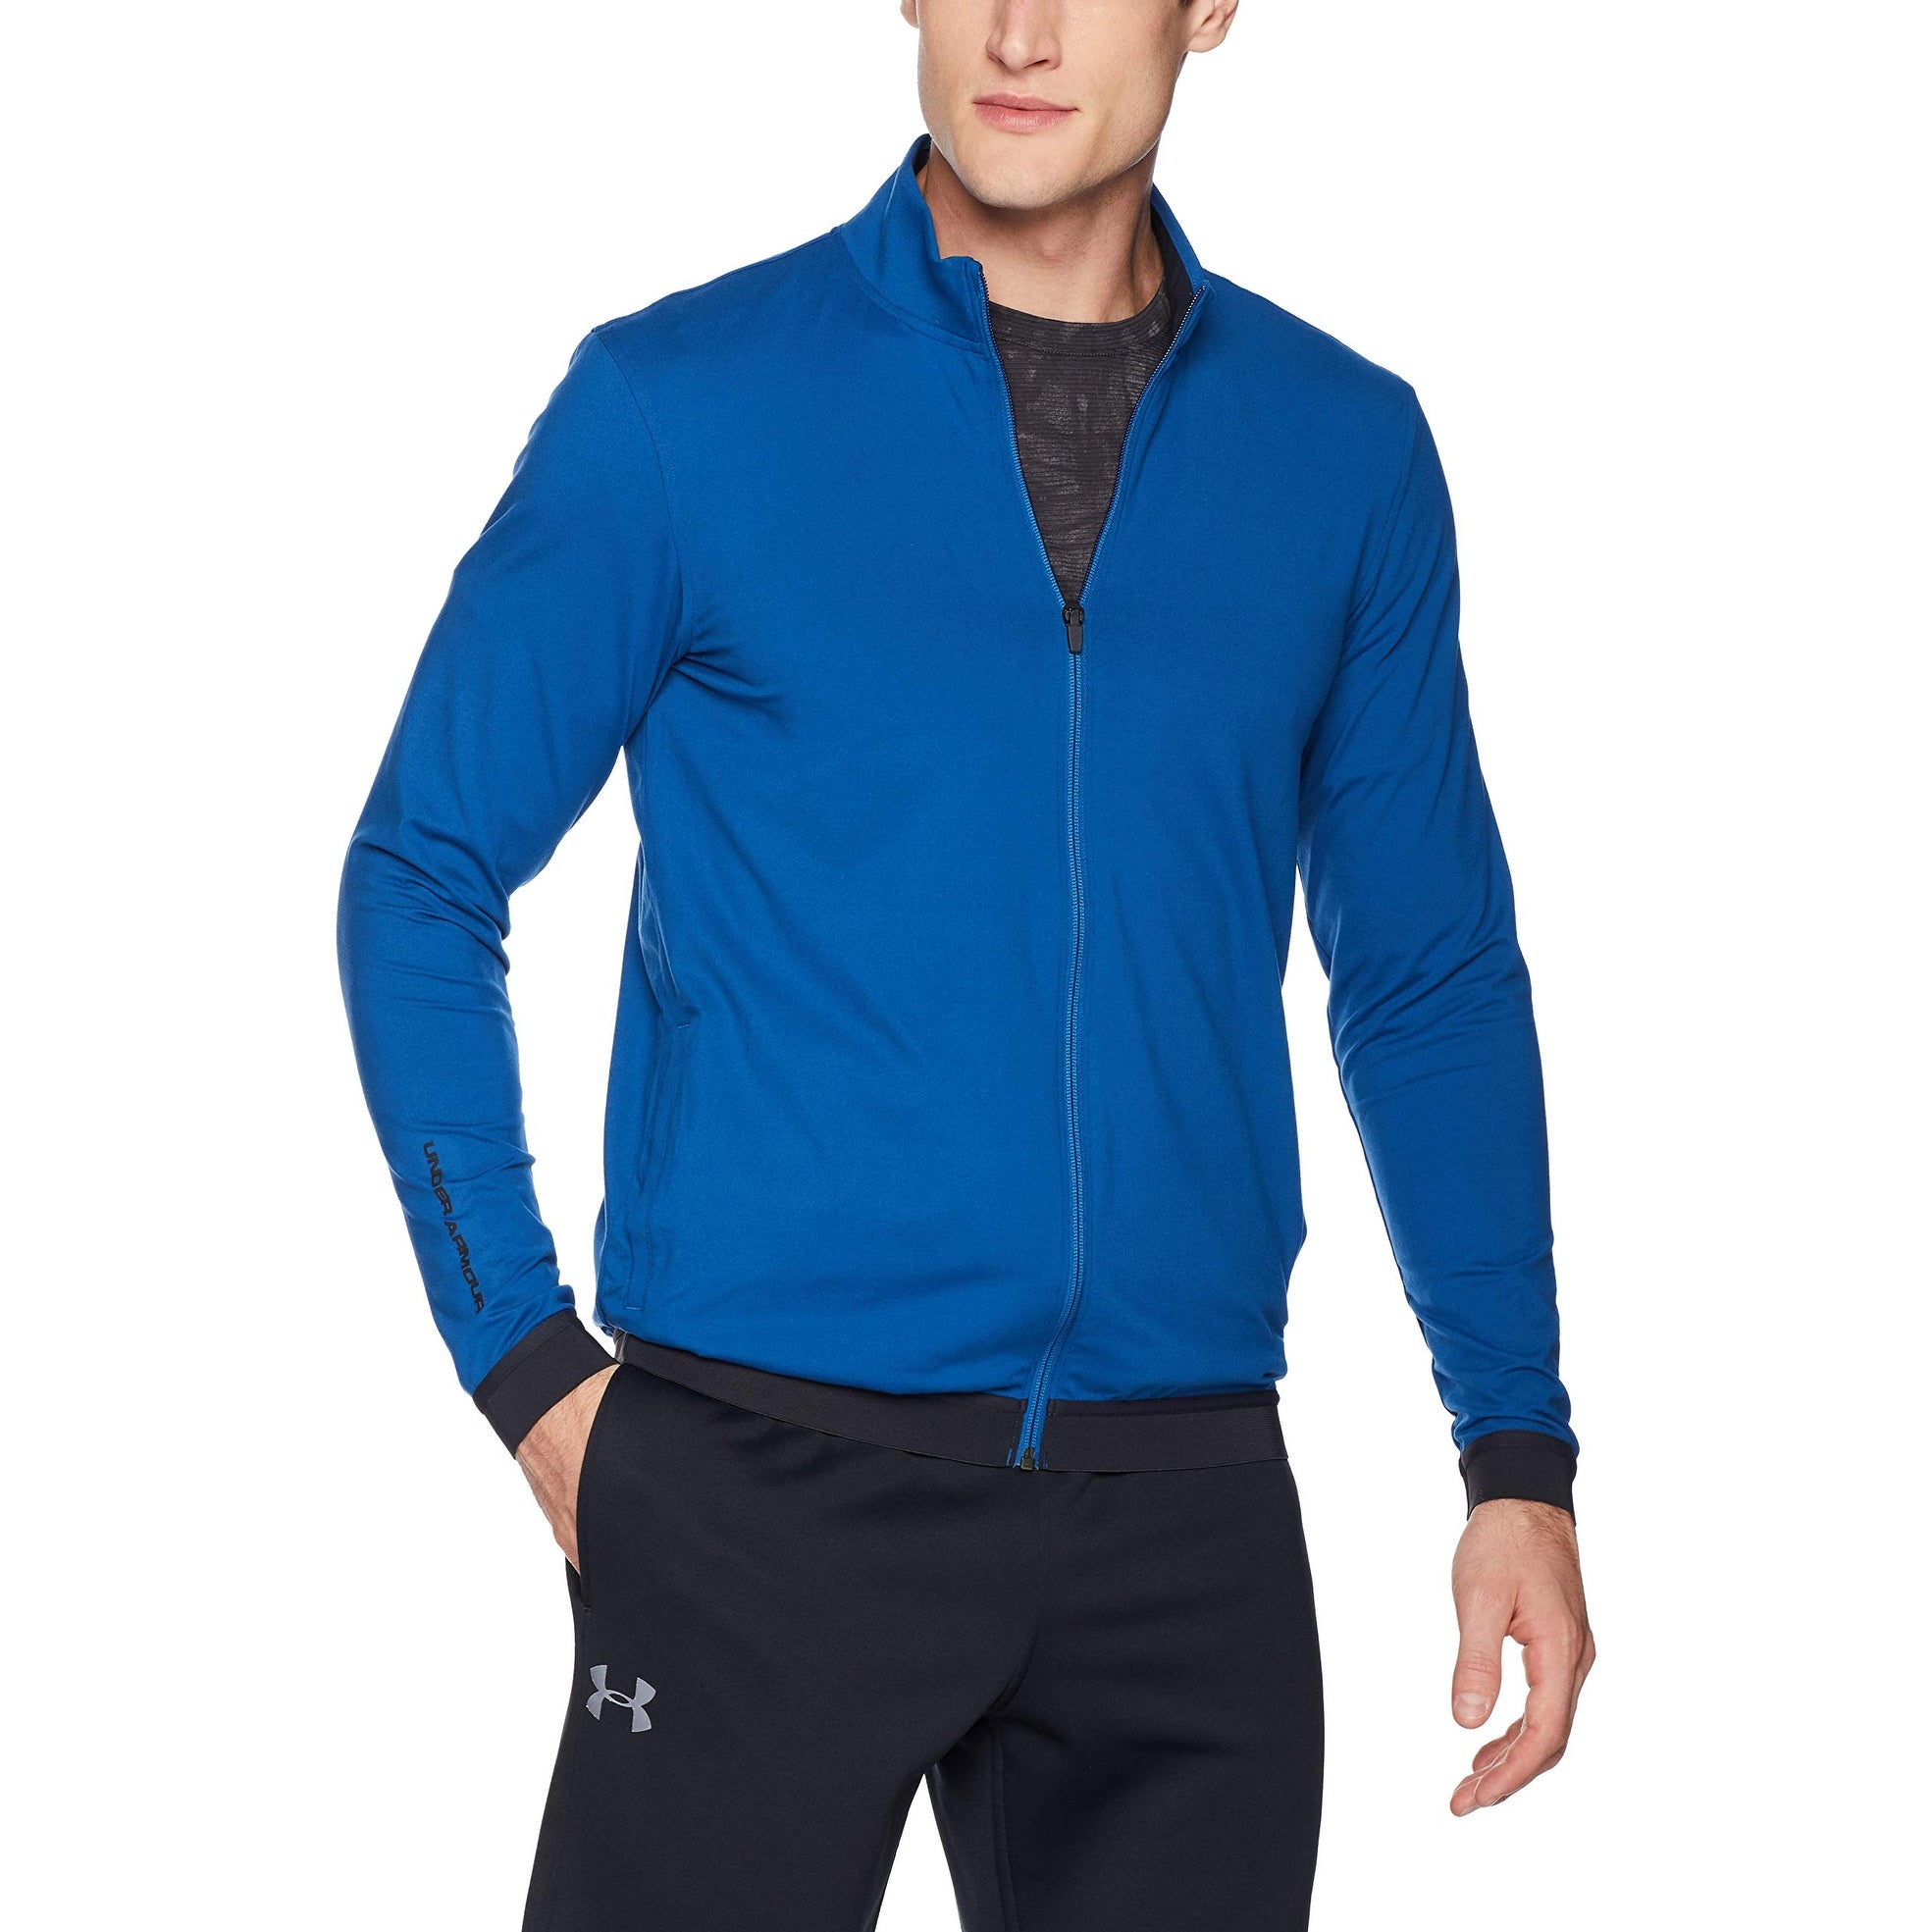 8a354bf06 Men's Under Armour Outerwear | Find Great Men's Clothing Deals Shopping at  Overstock